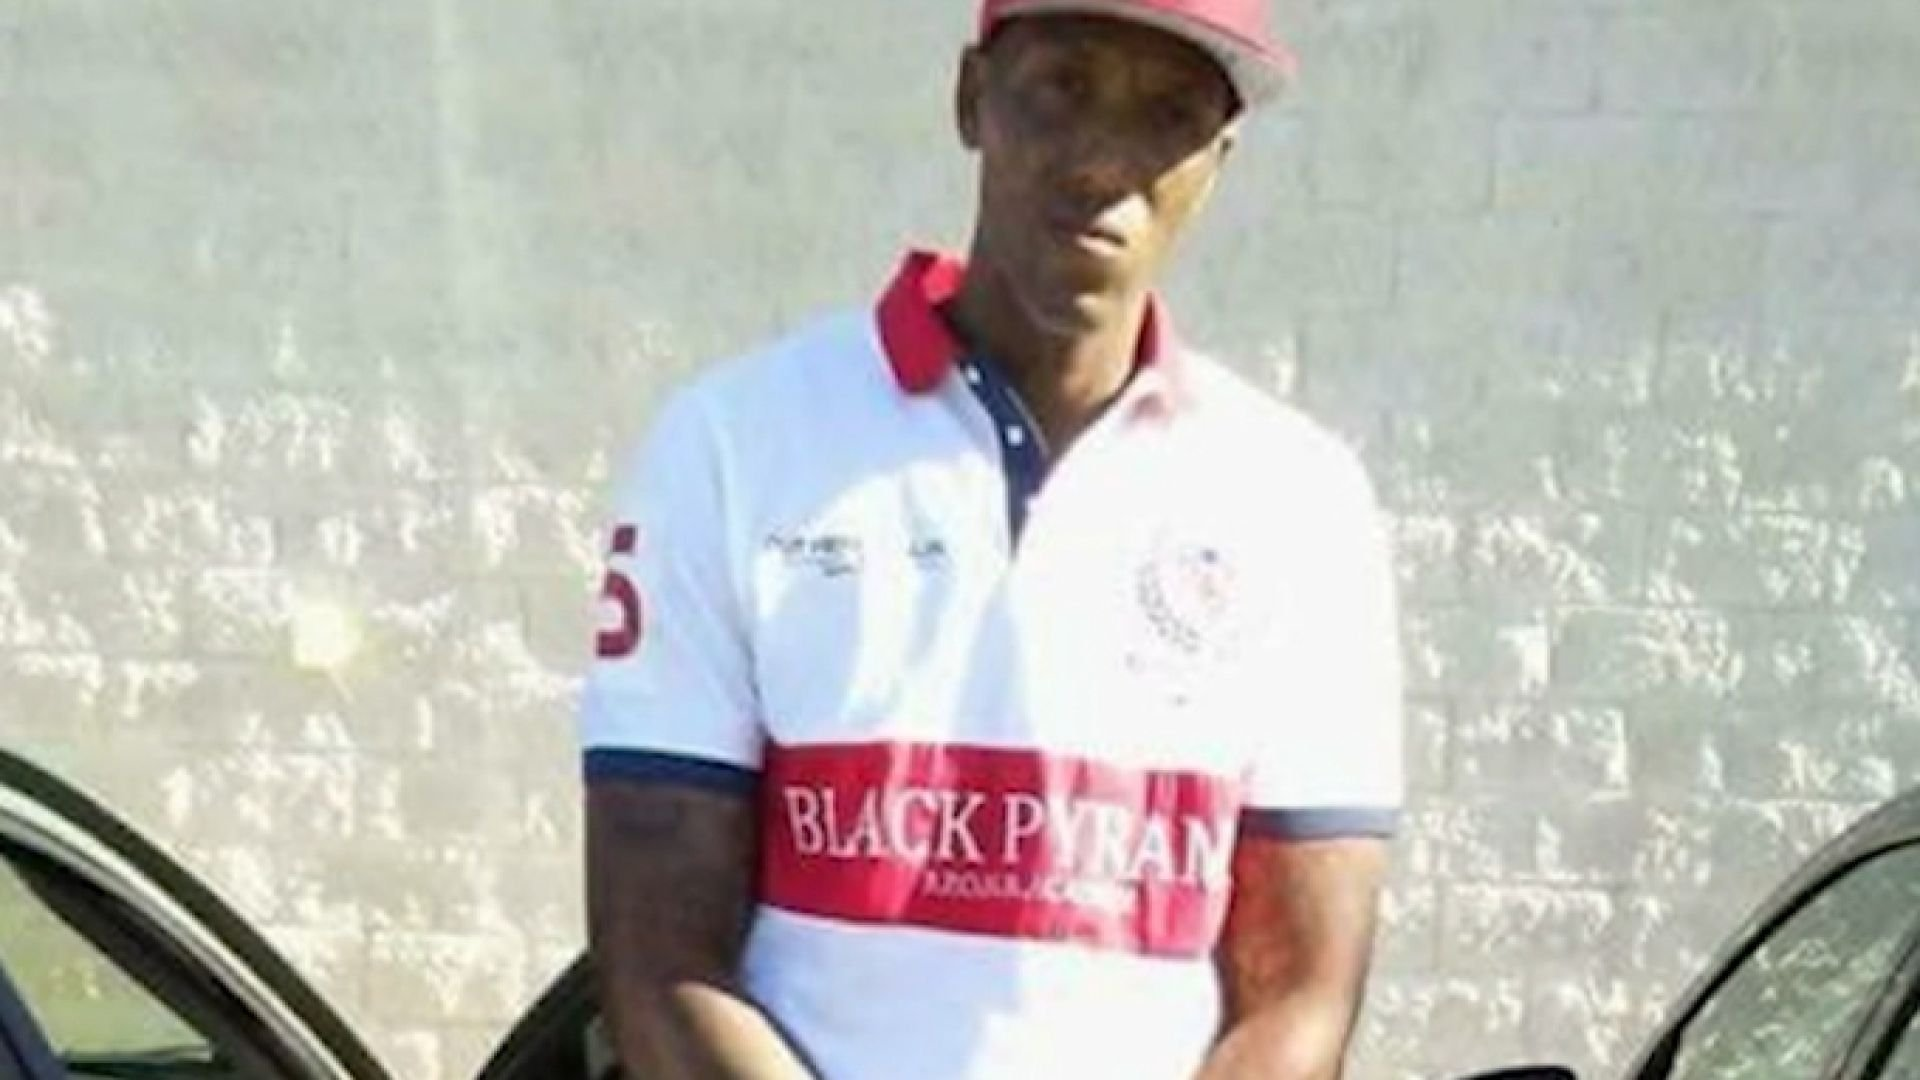 31-year-old Jamel Dunn drowned in a retention pond on July 9.